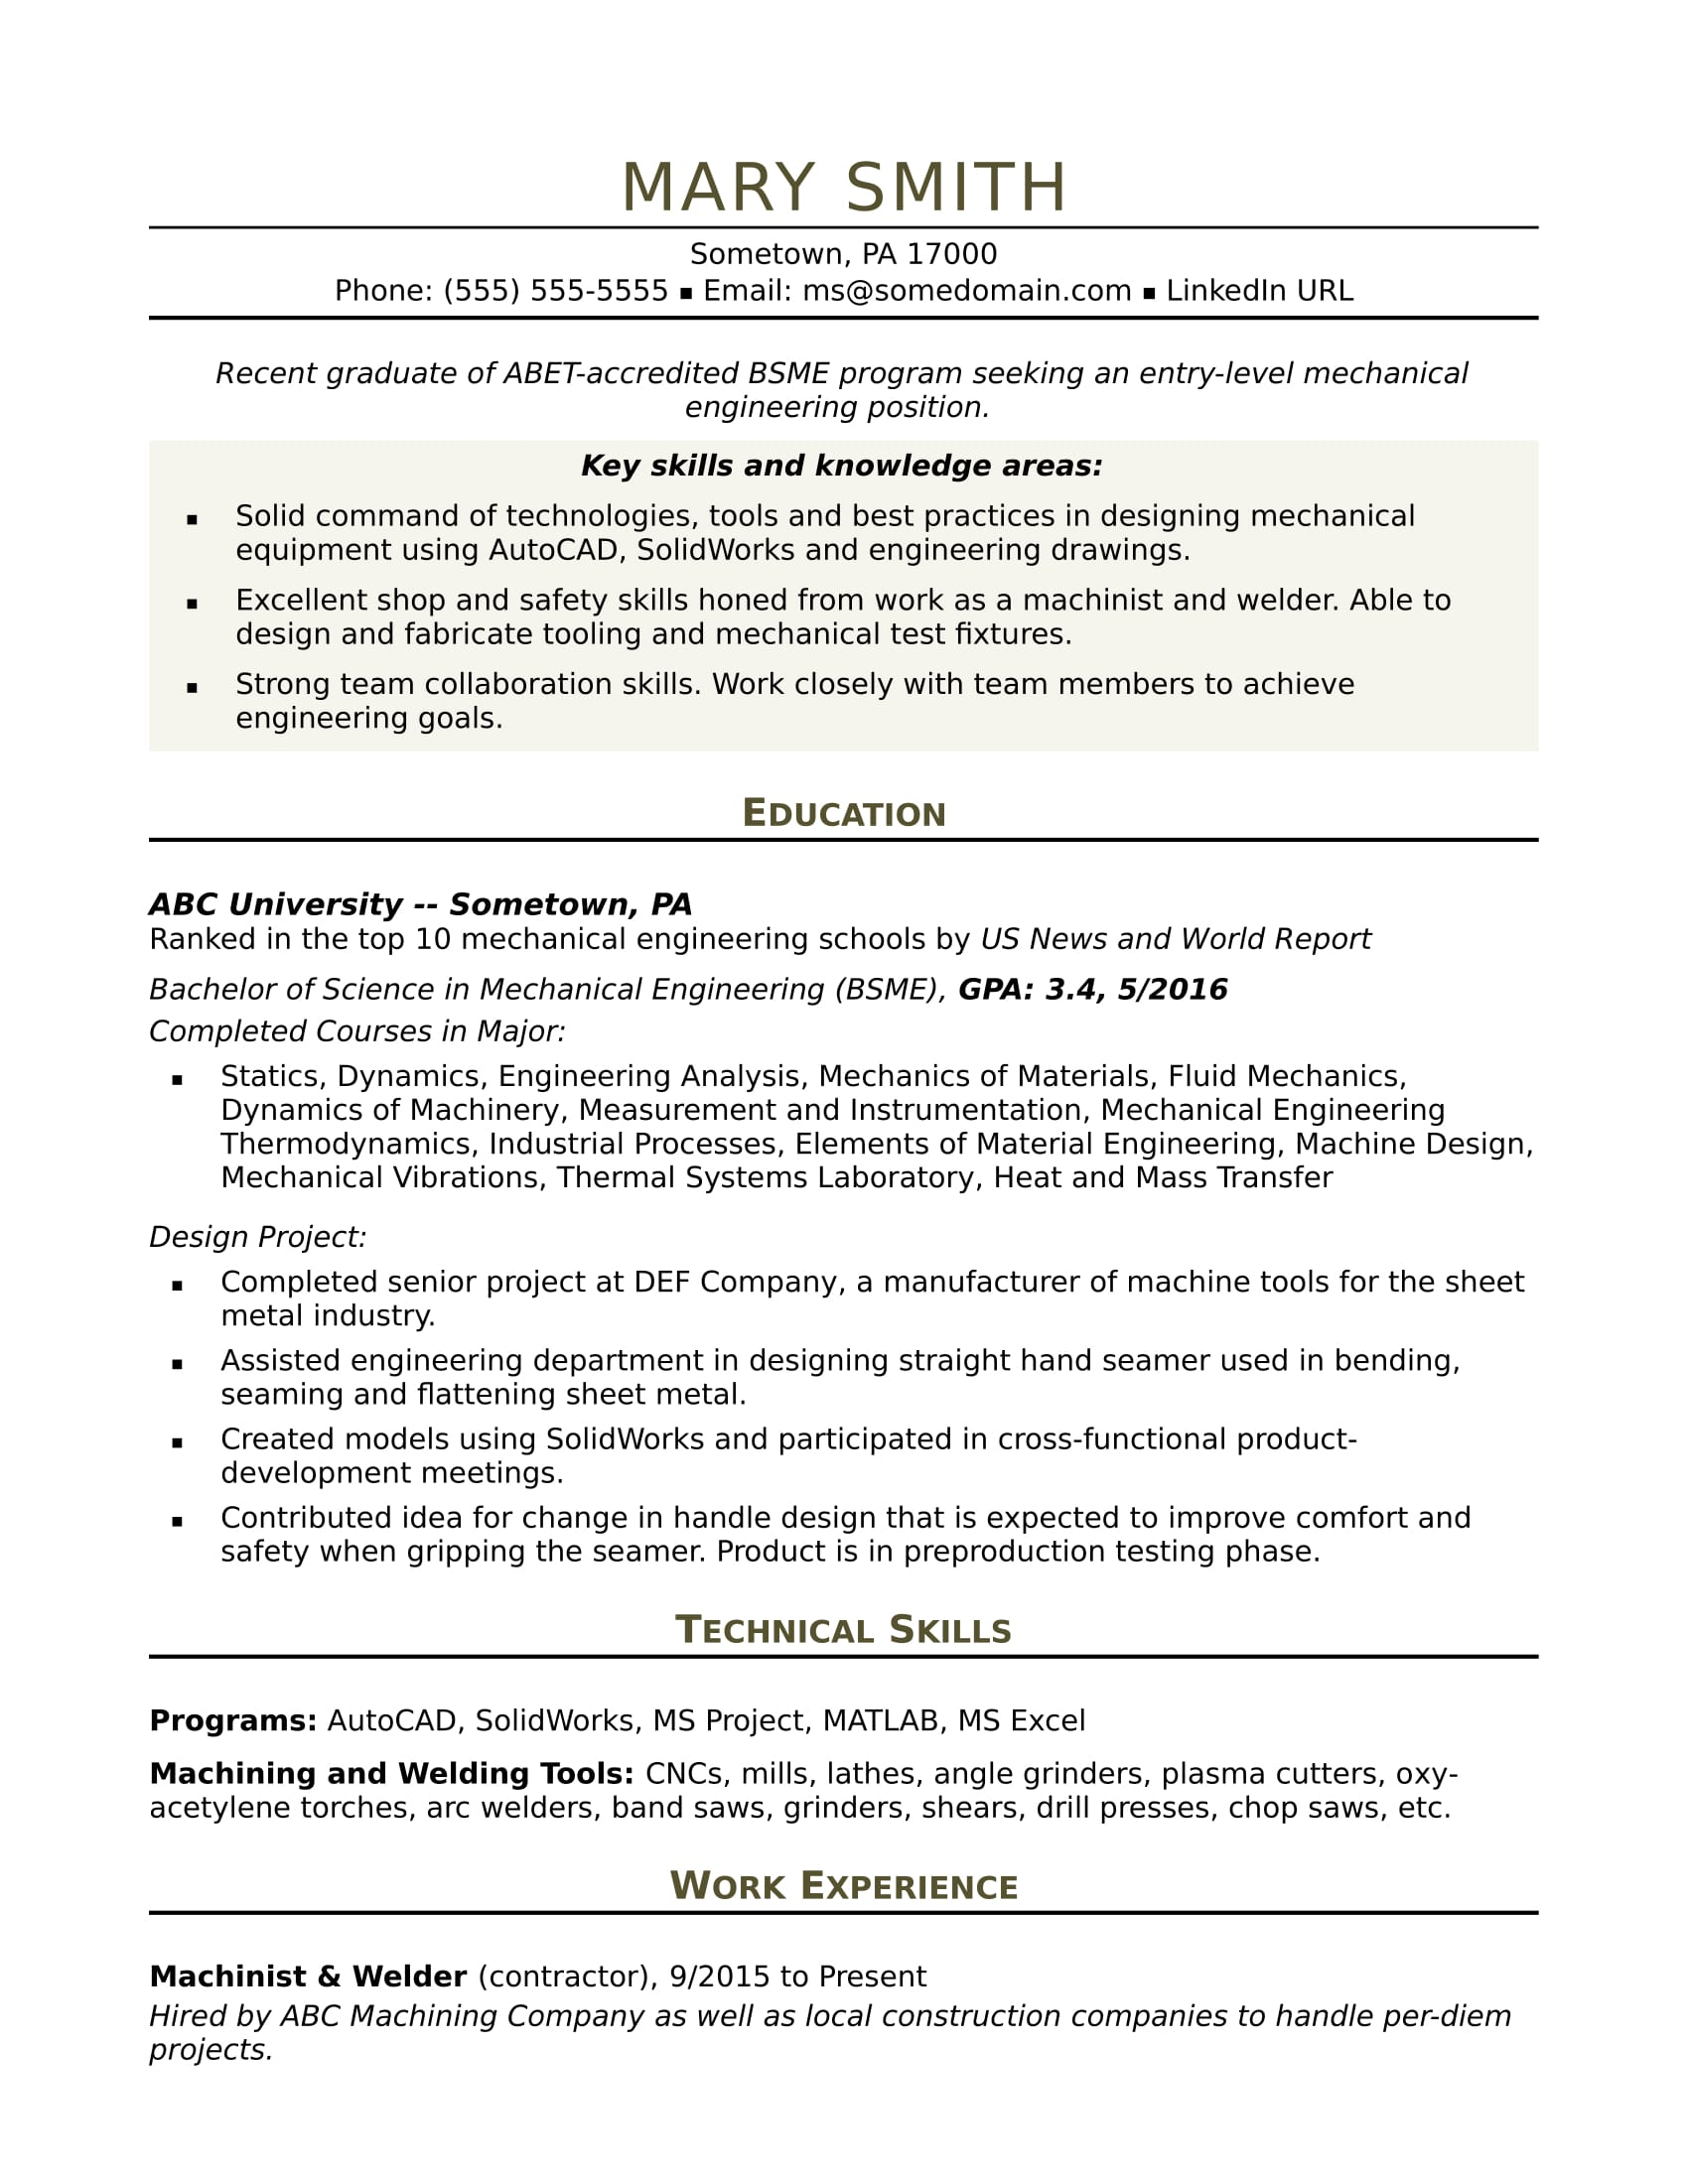 Sample Resume For An Entry Level Mechanical Engineer